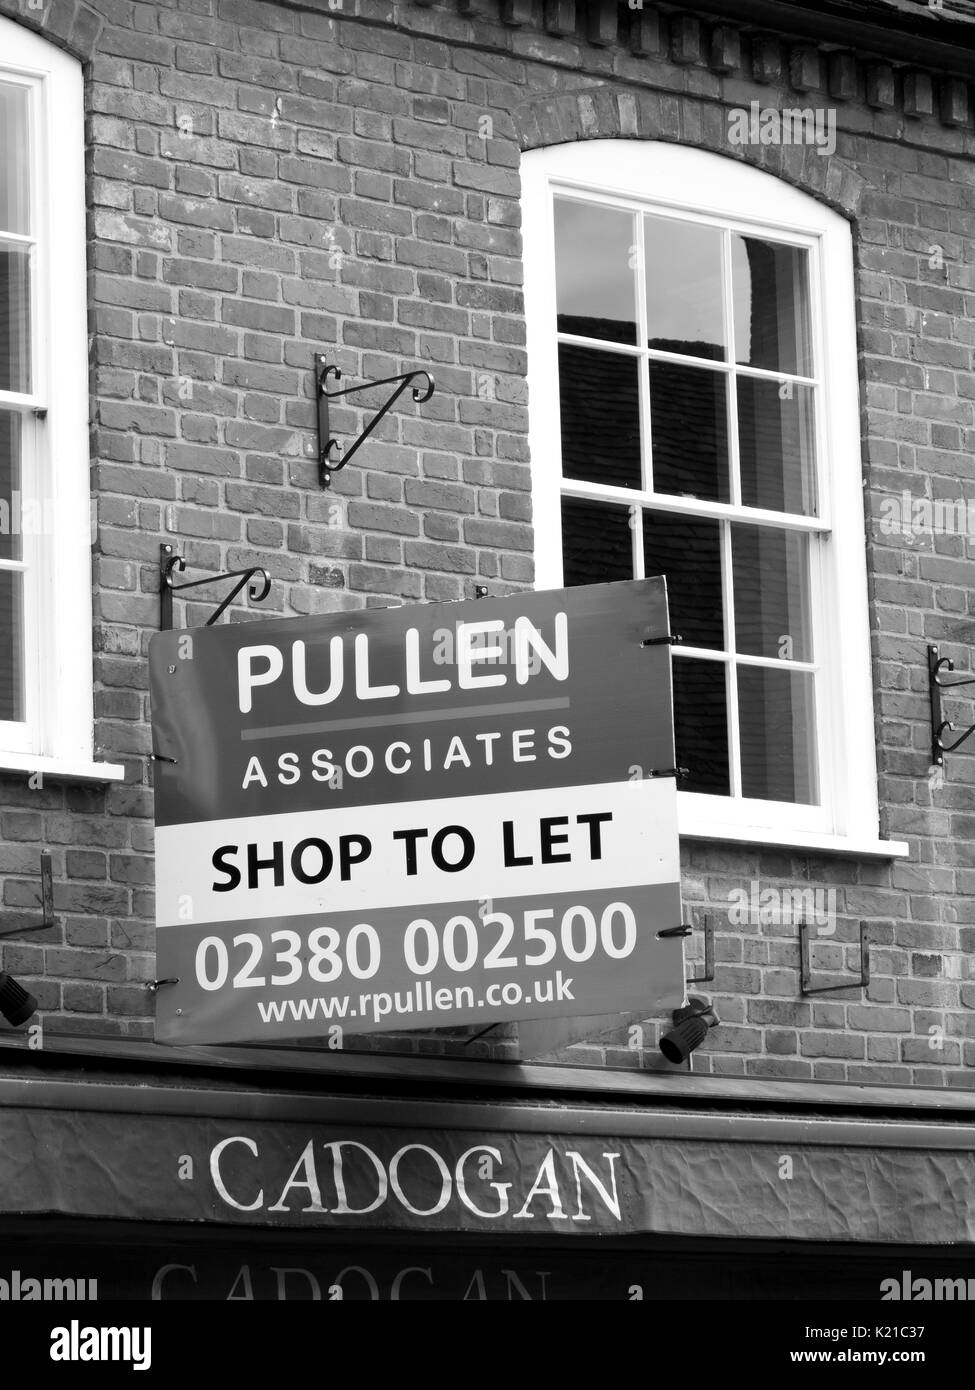 Pullen Associates shop to let advertising sign over vacant retail premises - Stock Image